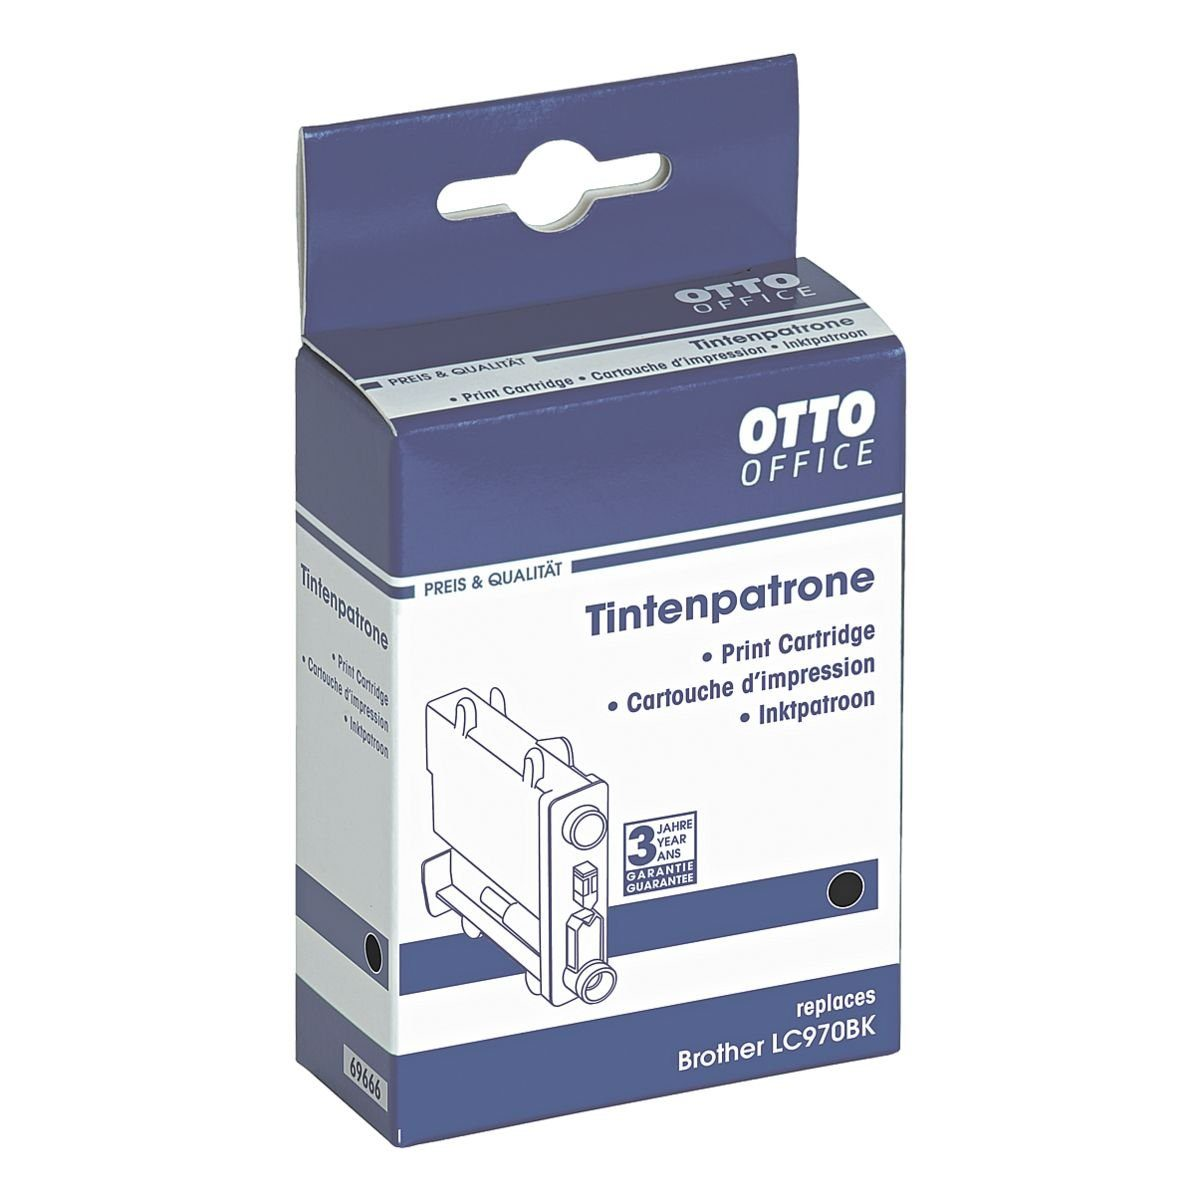 OTTO Office Standard Tintenpatrone ersetzt Brother »LC970BK«